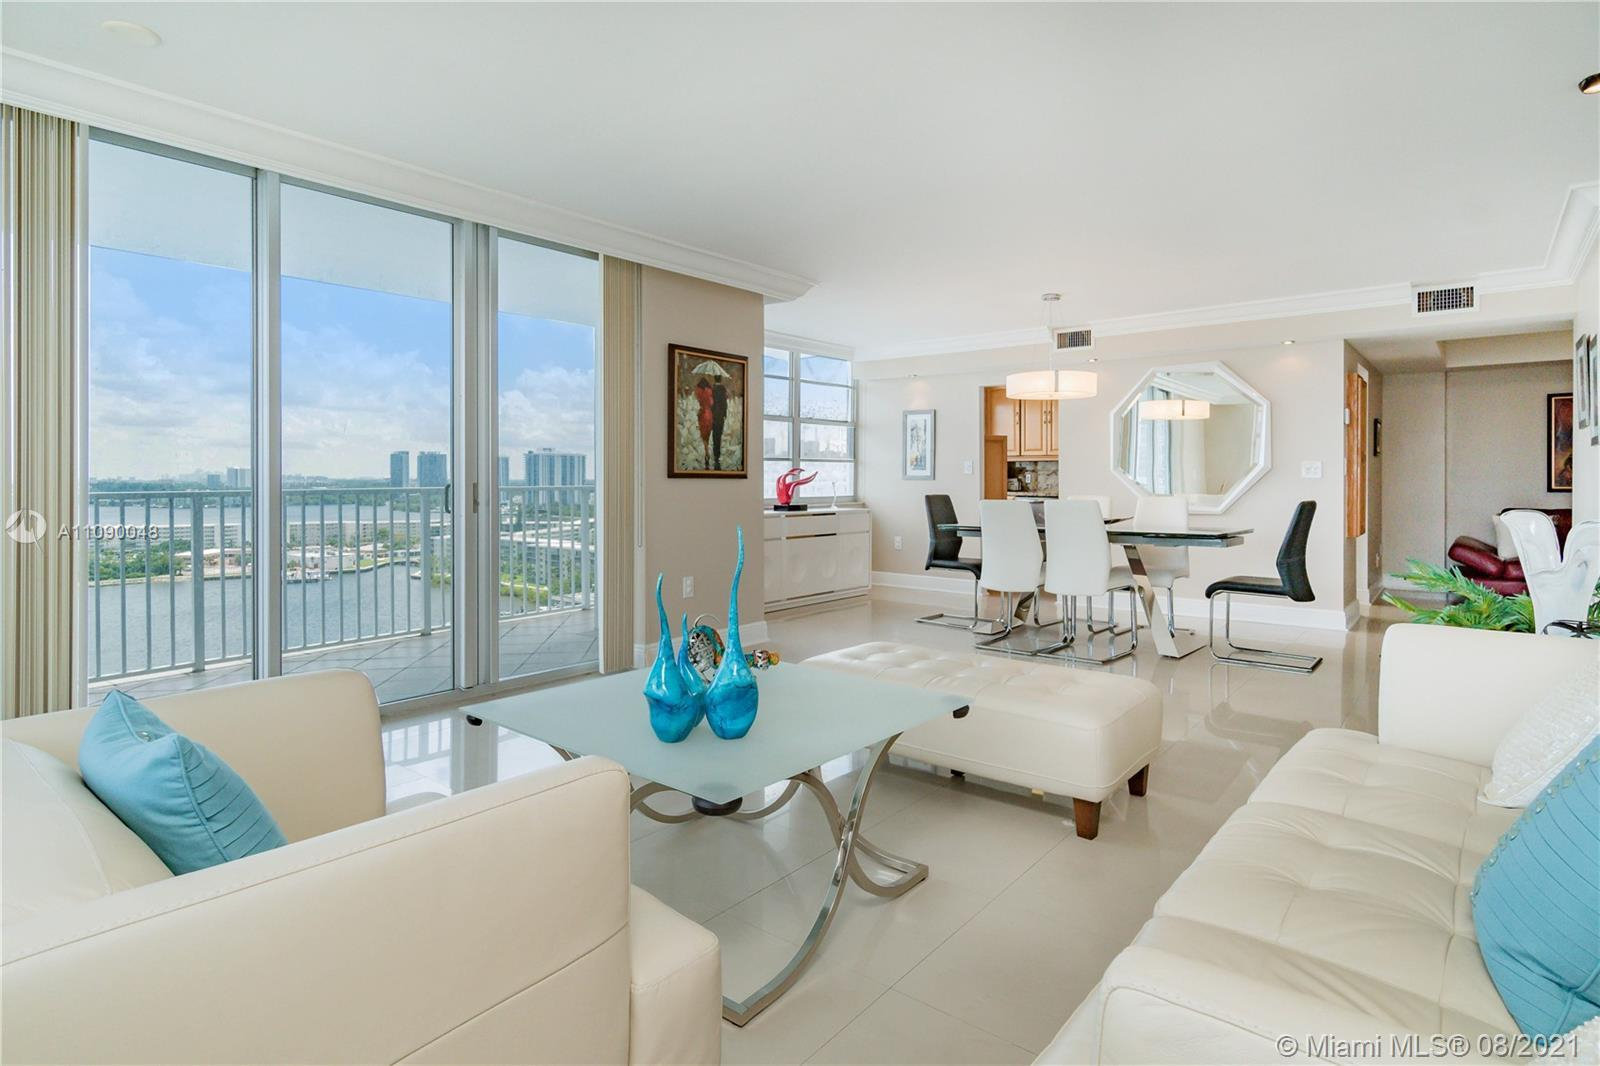 Beautifully remodeled largest corner unit in Admirals Port, 2 bedroom + den, 2 bath, modern, with st